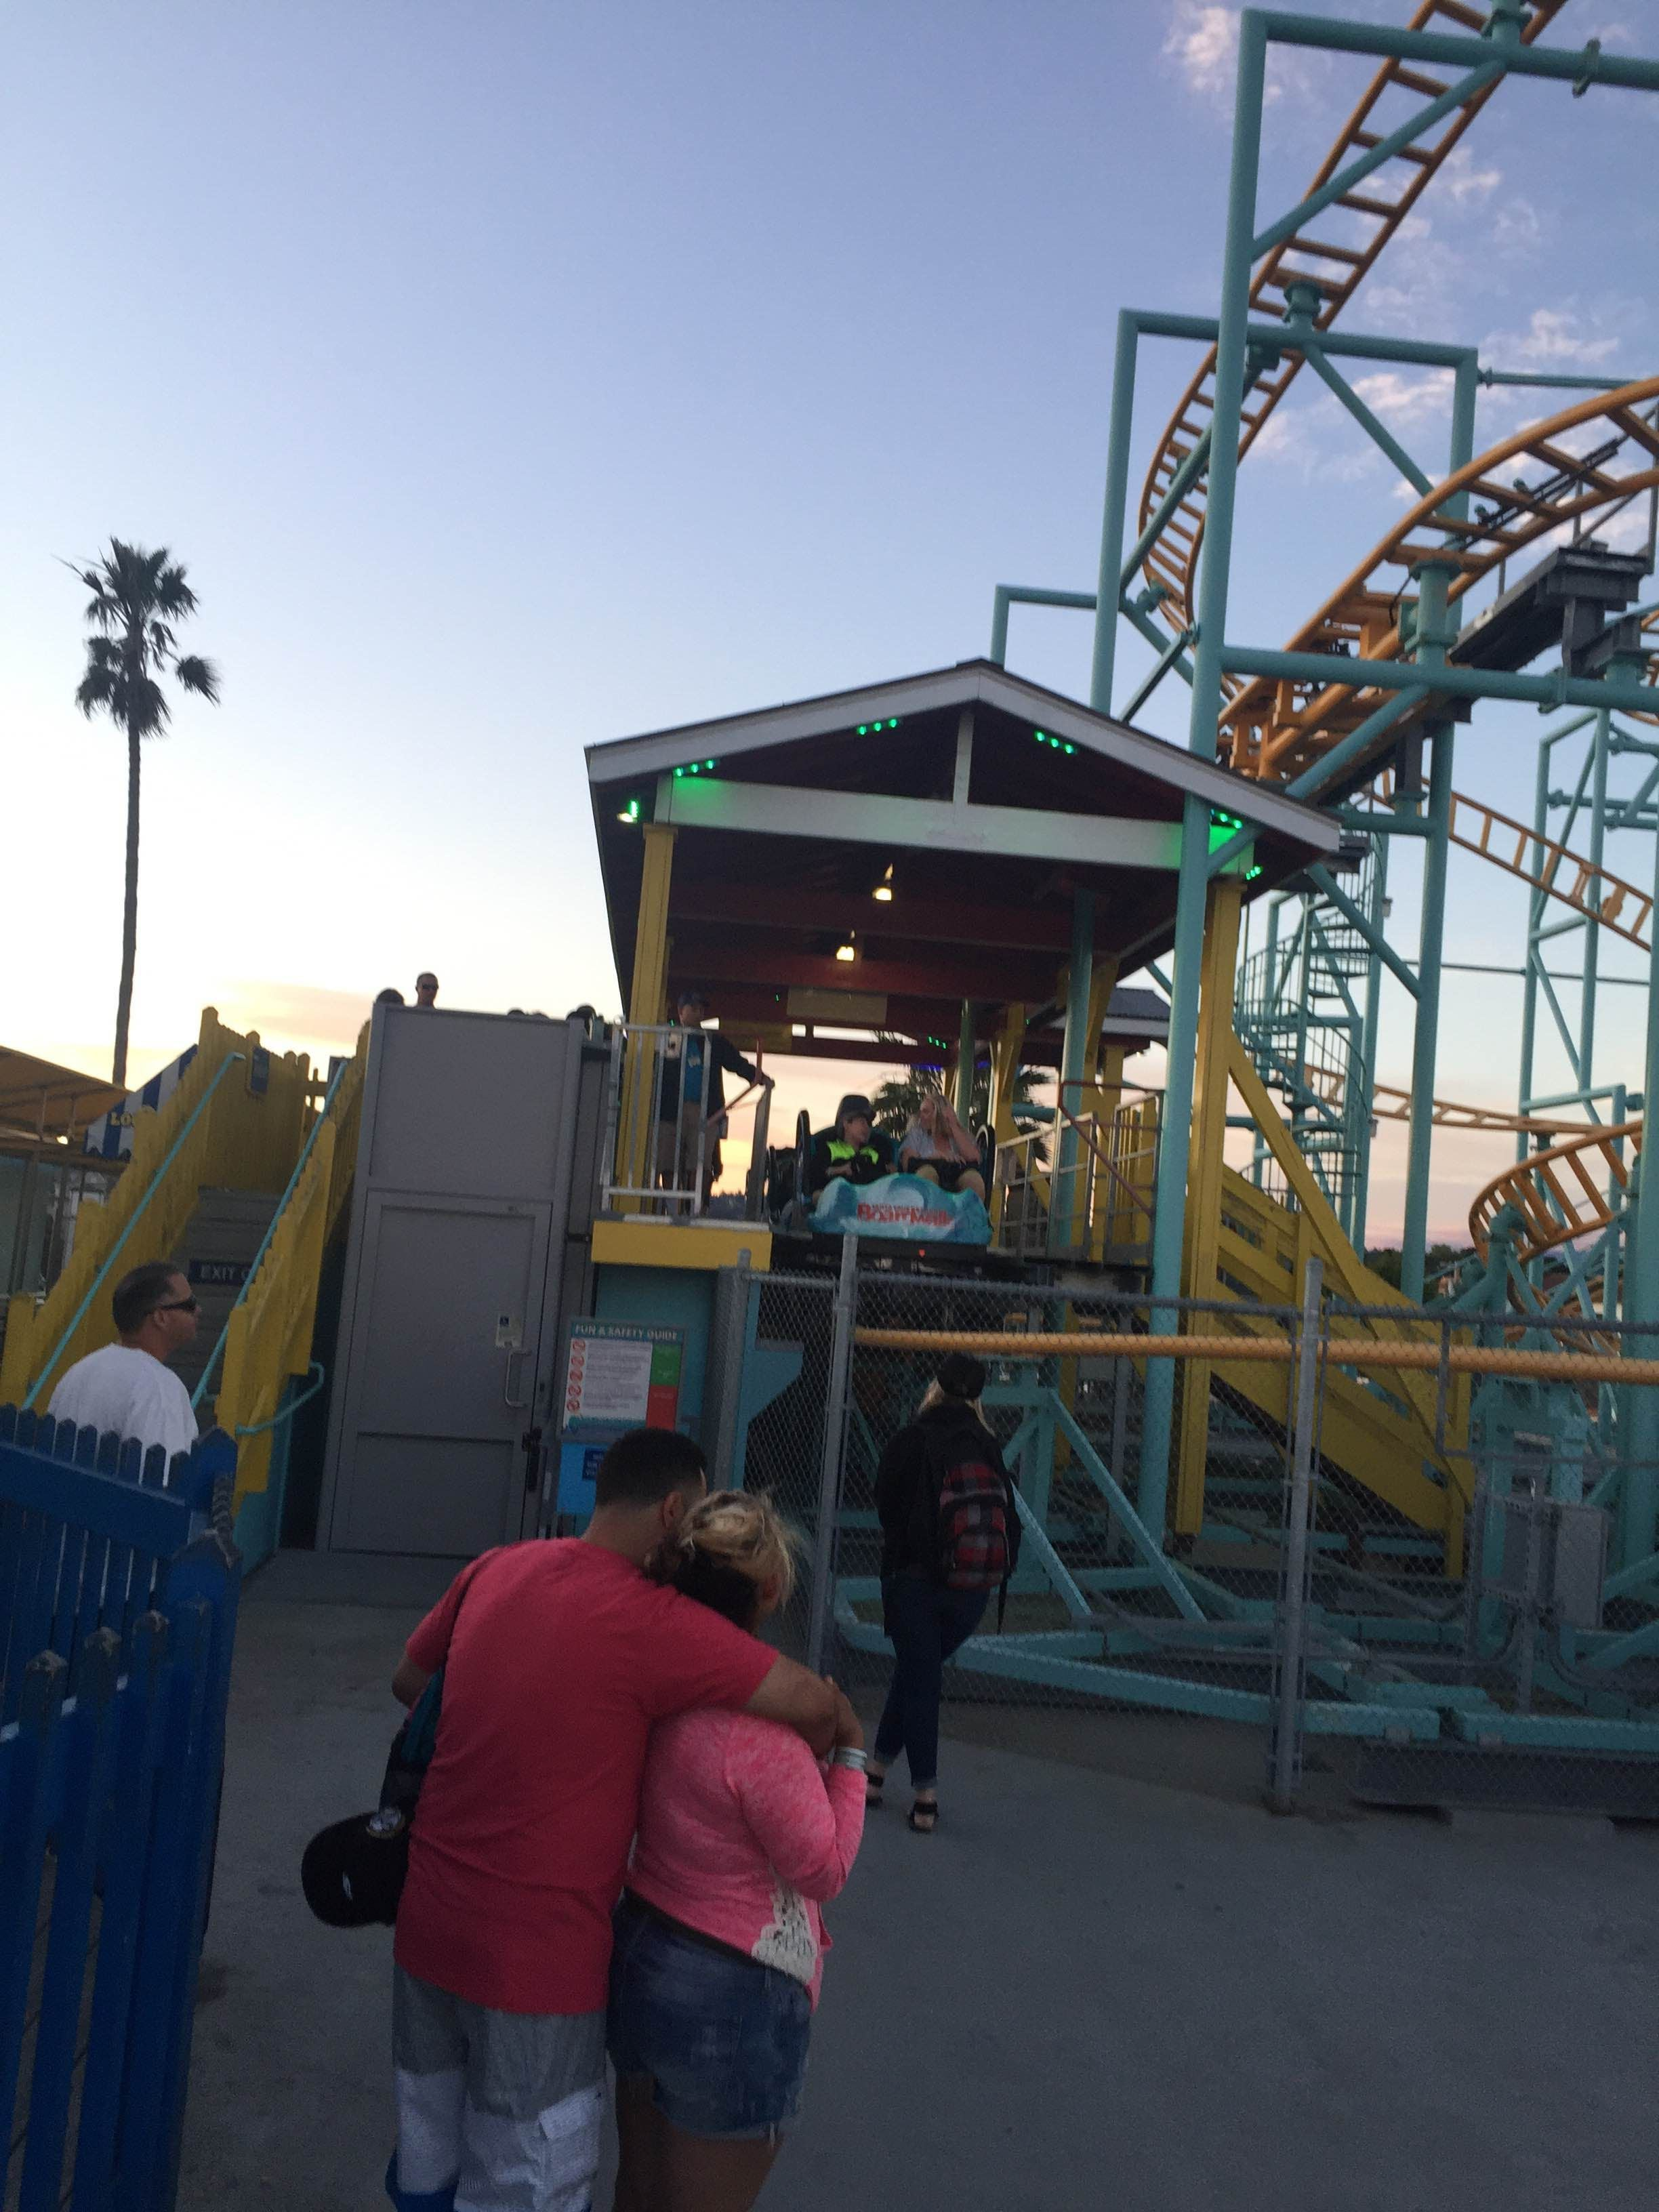 Parque de atracciones en Santa Cruz Beach Boardwalk